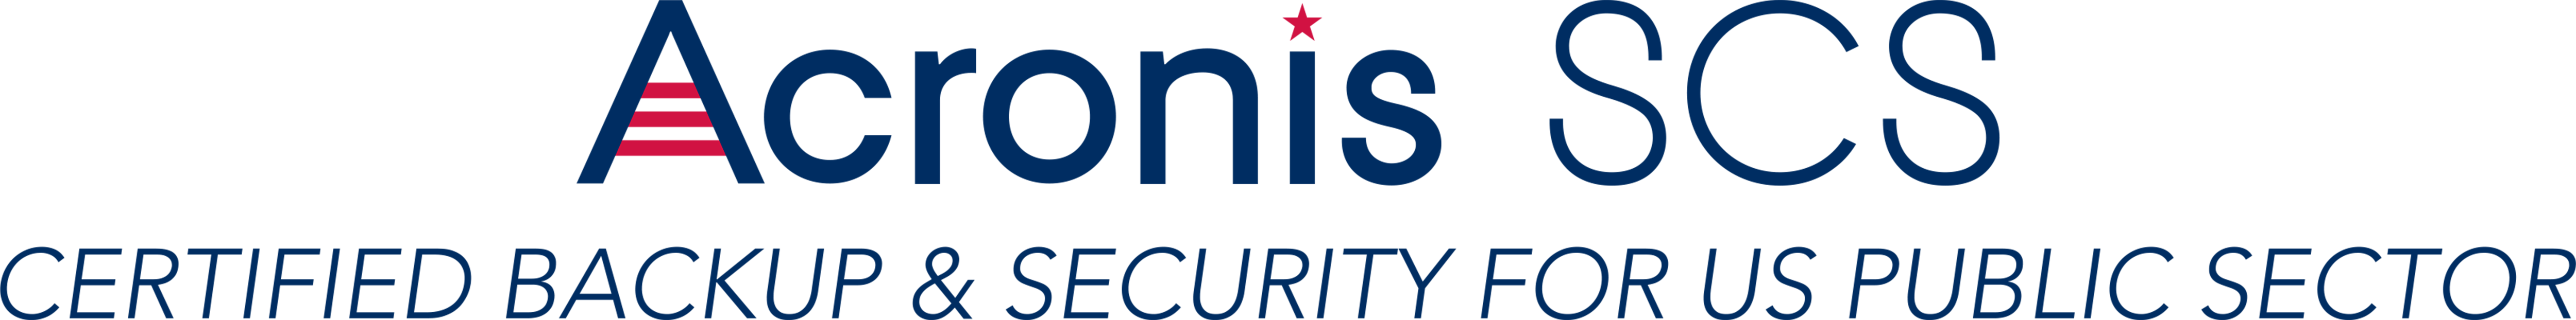 Acronis SCS webpage_Title png